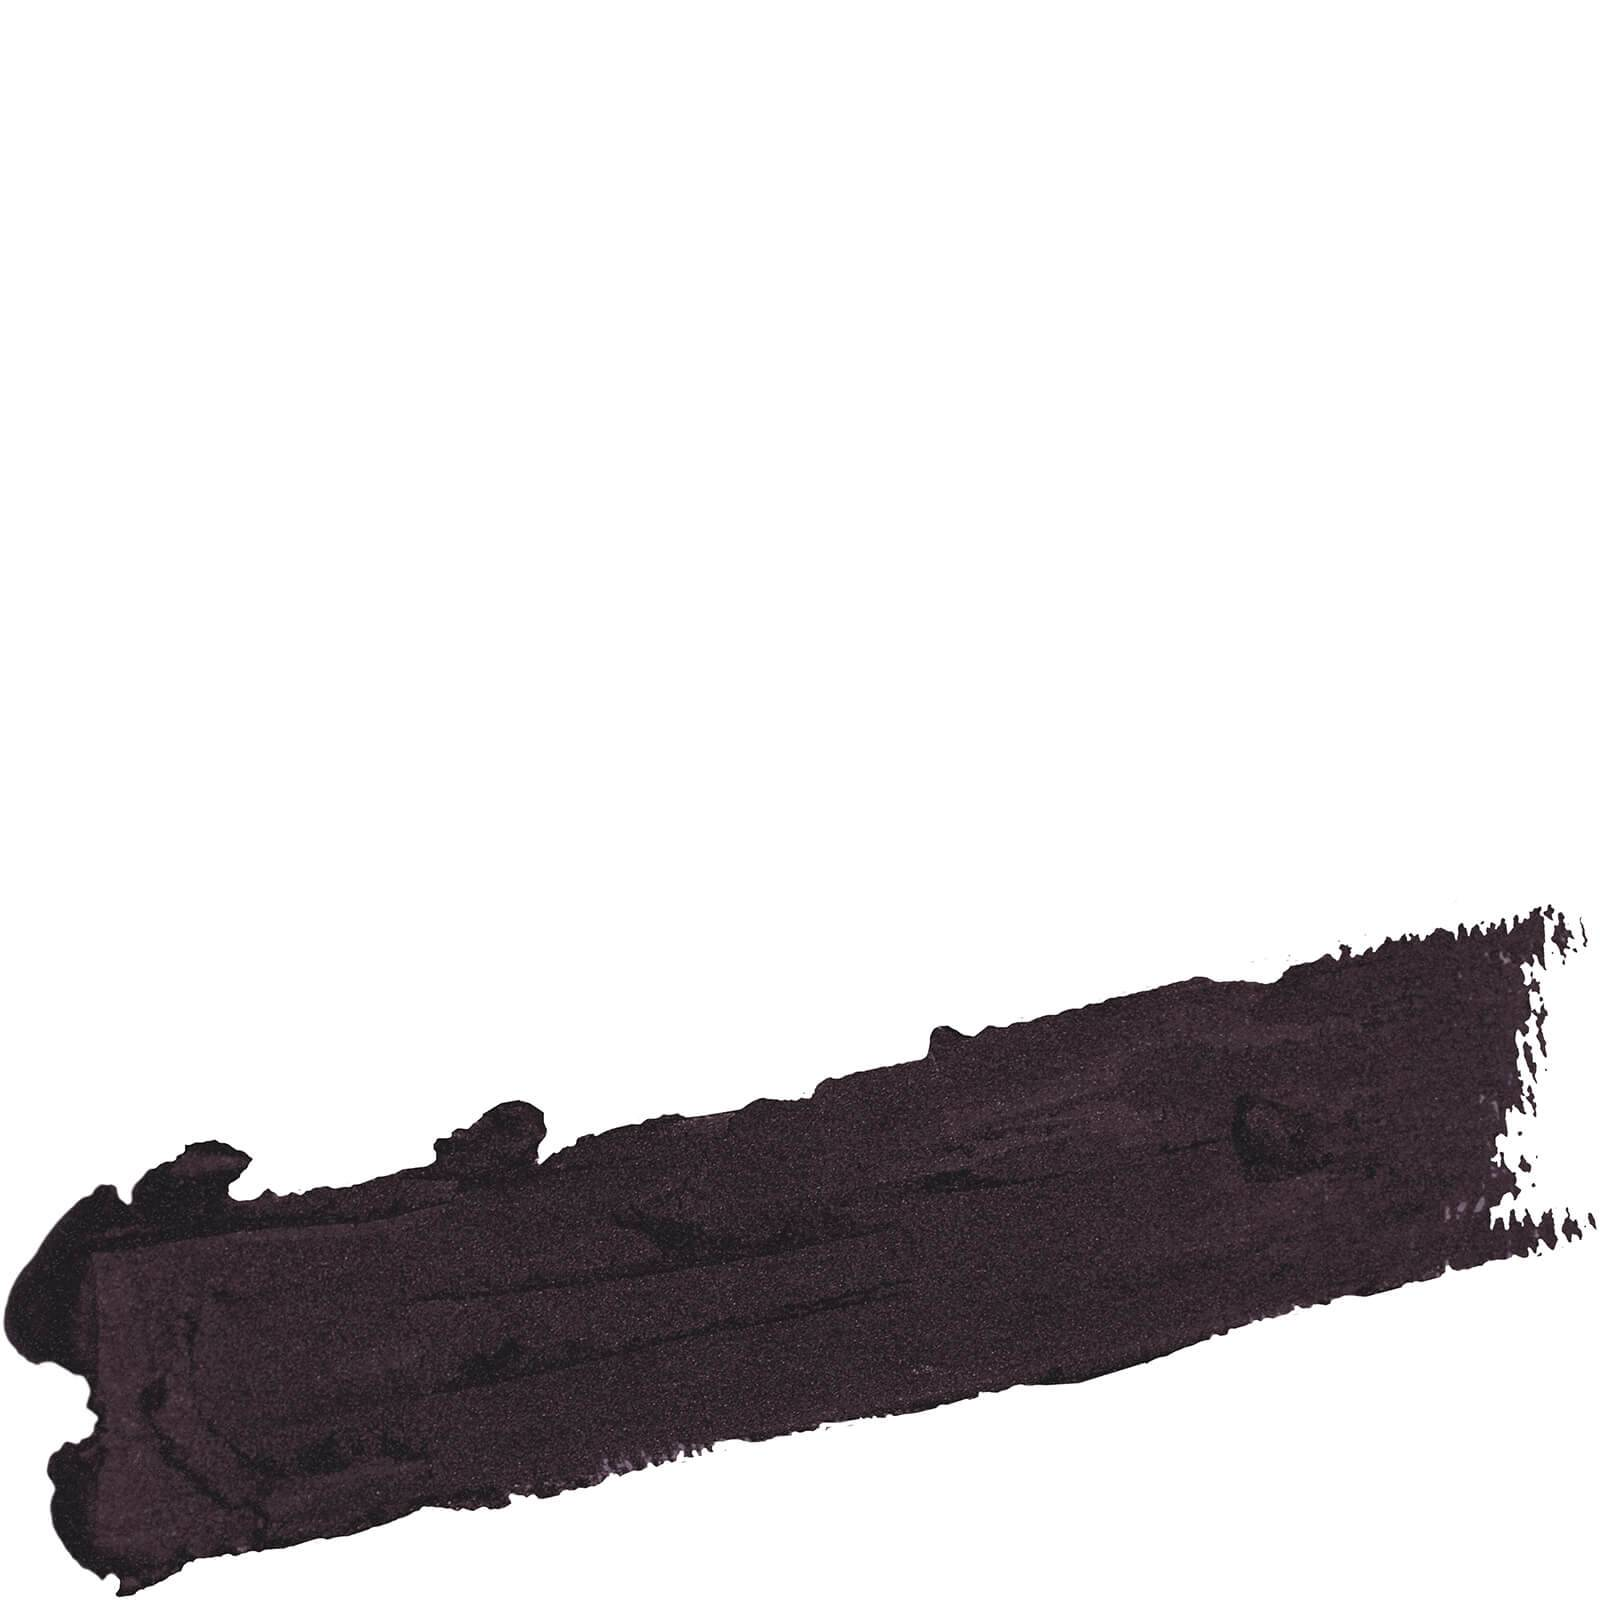 By Terry Stylo Blackstar Eye Liner 1.4g (Various Shades) - No.2 Purpulyn Gem